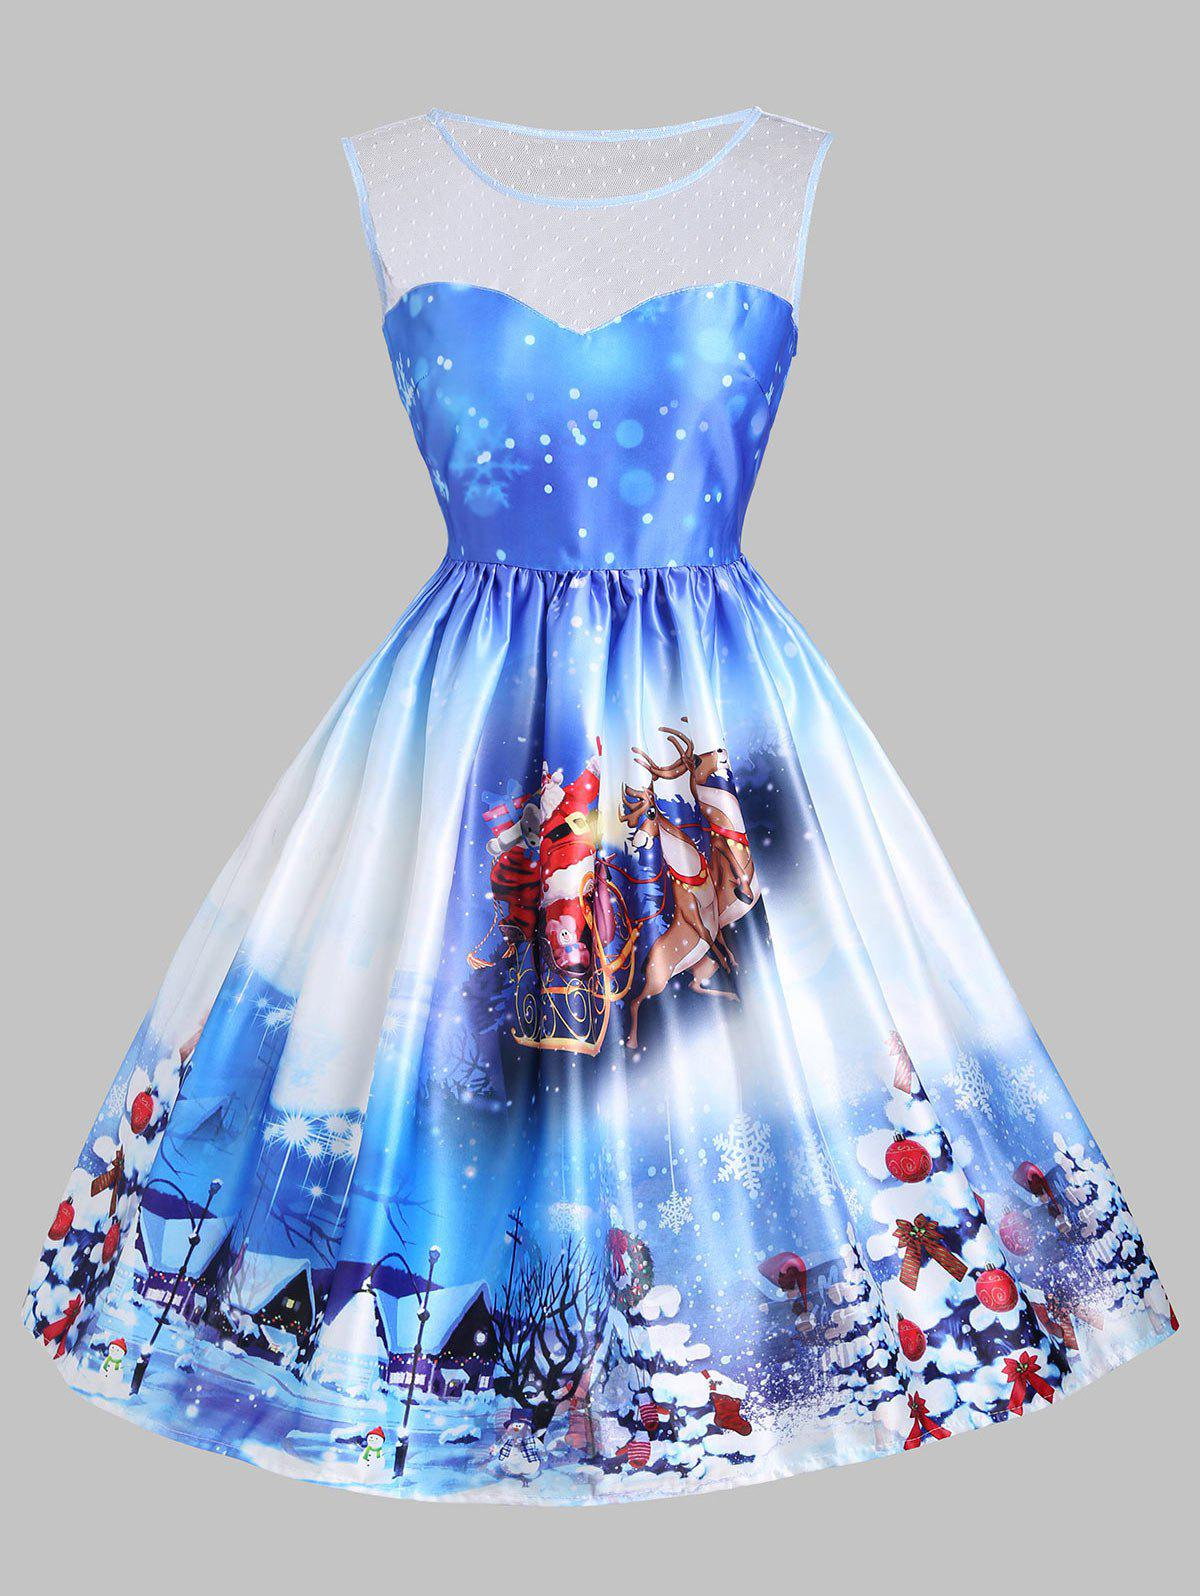 Christmas Tree Sled Mesh Insert DressWOMEN<br><br>Size: S; Color: BLUE; Style: Vintage; Material: Cotton,Polyester; Silhouette: A-Line; Dresses Length: Knee-Length; Neckline: Round Collar; Sleeve Length: Sleeveless; Embellishment: Mesh; Pattern Type: Animal,Plant; With Belt: No; Season: Fall,Spring,Summer; Weight: 0.3500kg; Package Contents: 1 x Dress;